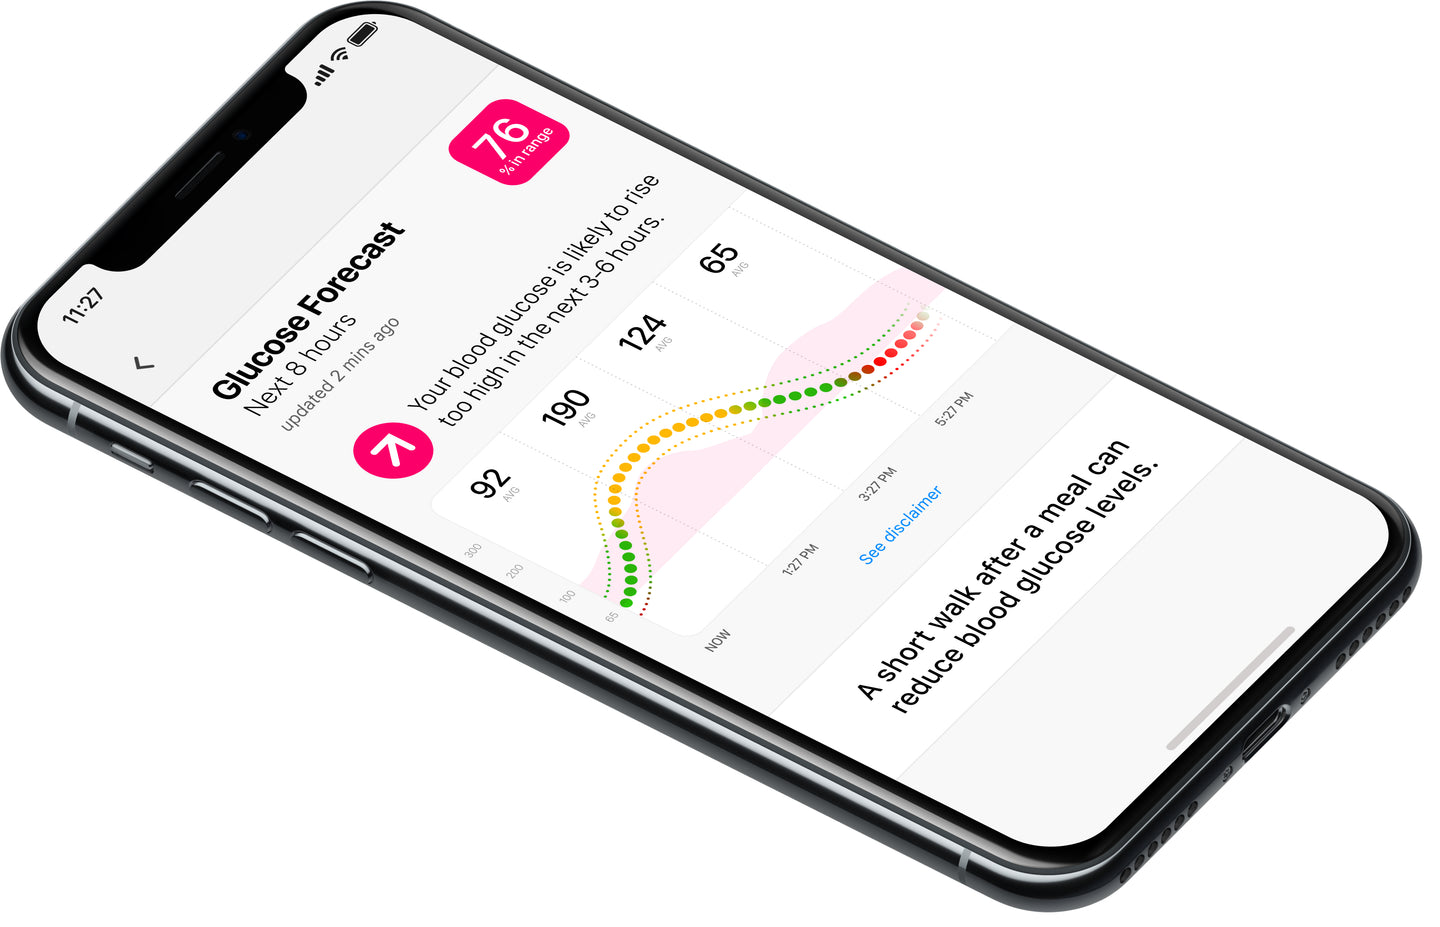 One Drop Announces Blood Glucose Predictive Capability for People Using Continuous Glucose Monitors